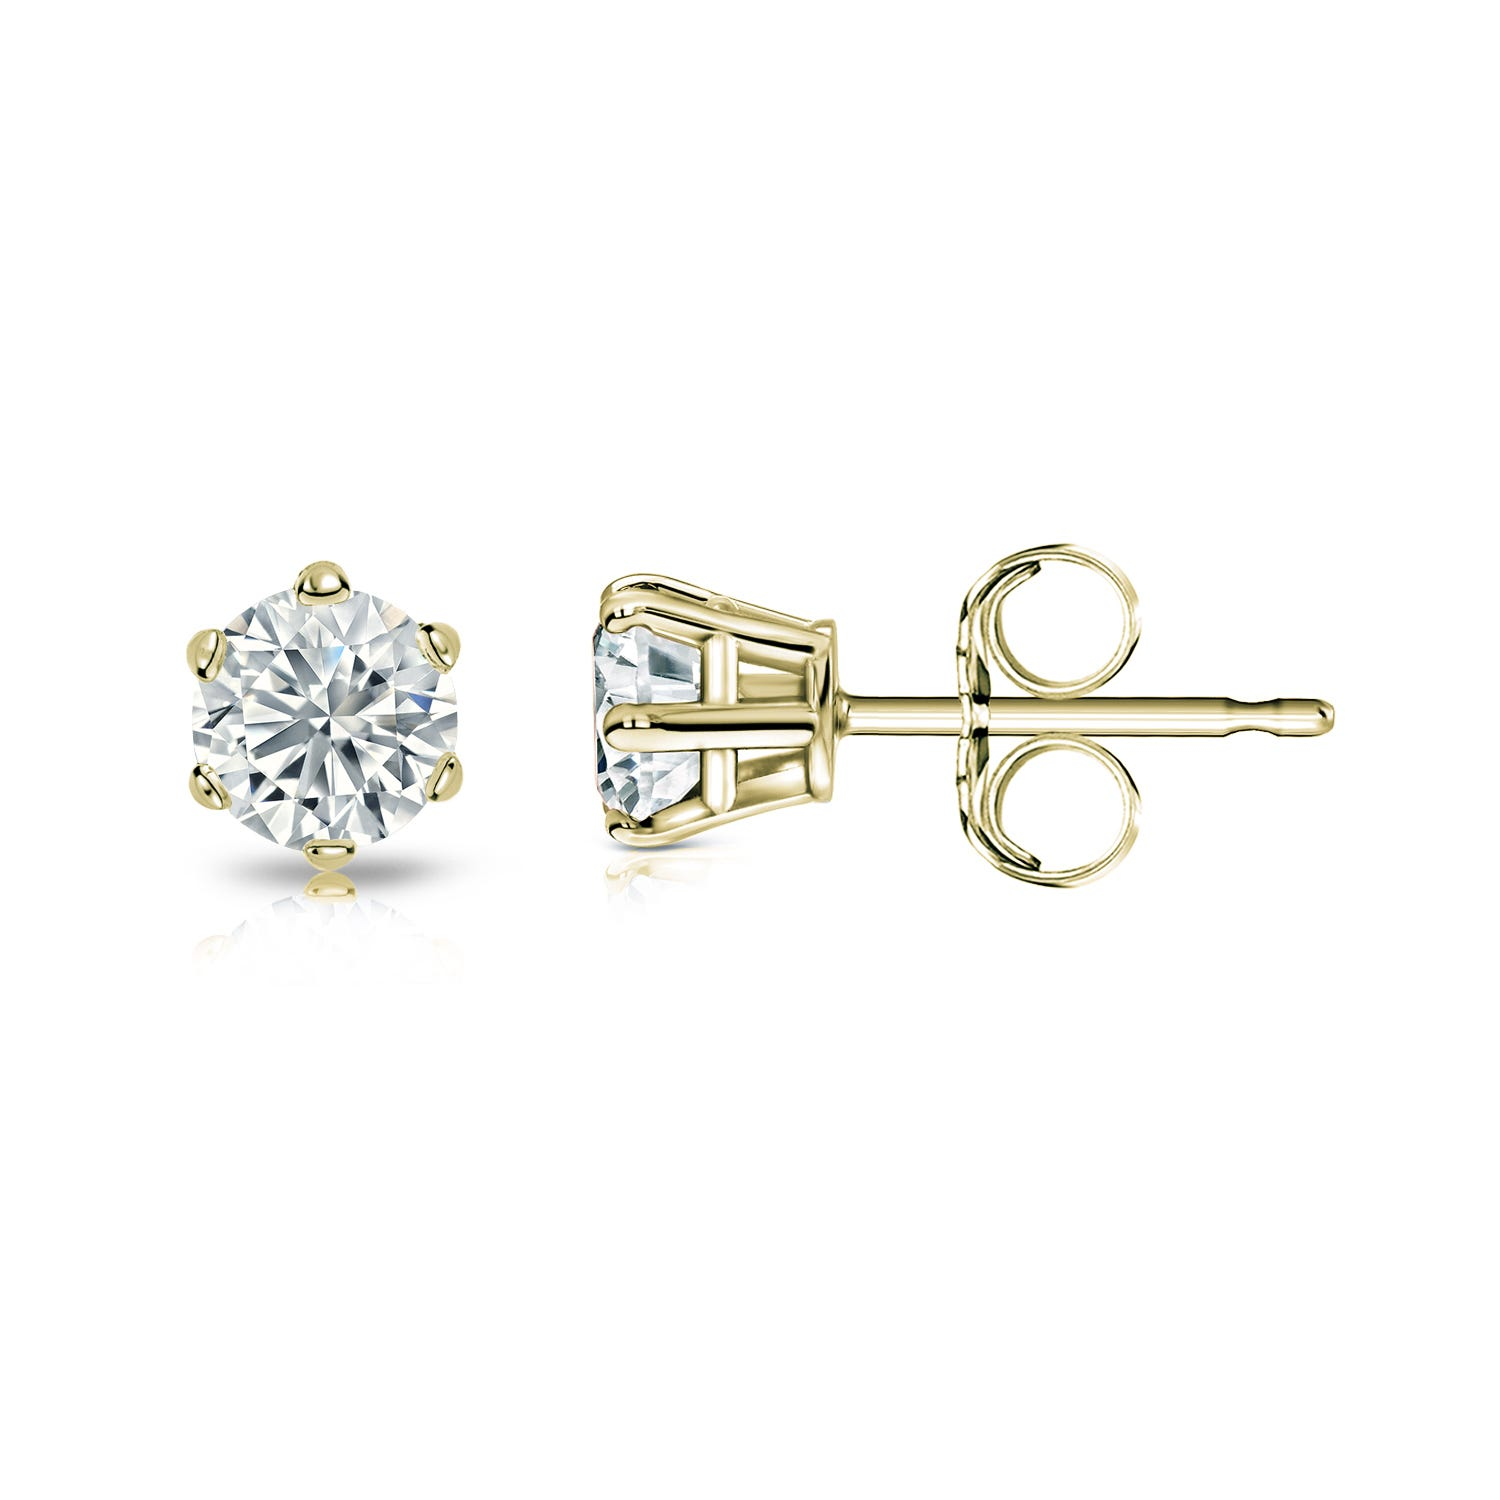 Round Diamond 1/10ctw. (IJ-SI2) Solitaire Stud 6-Prong Earrings in 14K Yellow Gold